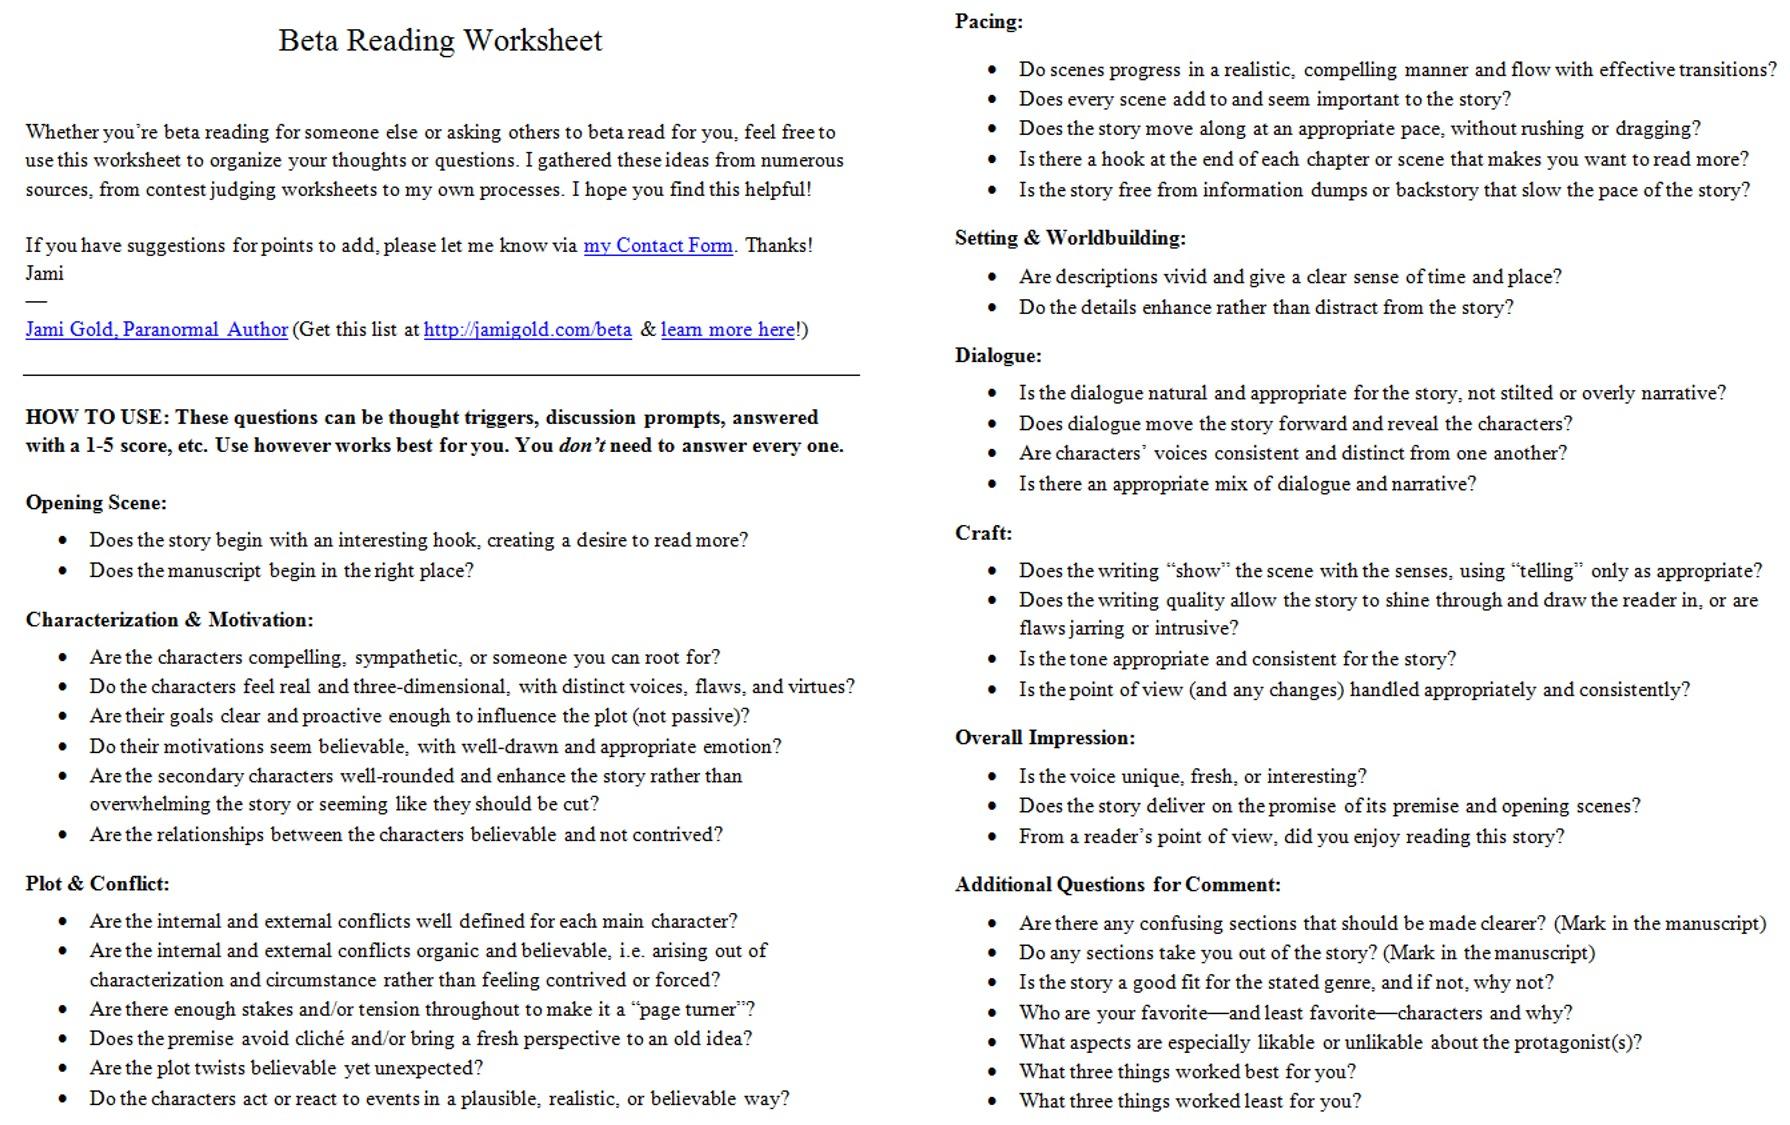 Aldiablosus  Picturesque Worksheets For Writers  Jami Gold Paranormal Author With Marvelous Screen Shot Of The Twopage Beta Reading Worksheet With Beauteous Parallel And Perpendicular Slopes Worksheet Also Supplementary And Complementary Angles Worksheets In Addition Fun Geometry Worksheets And Synonyms And Antonyms Worksheet Pdf As Well As Adding Worksheet Additionally Story Structure Worksheet From Jamigoldcom With Aldiablosus  Marvelous Worksheets For Writers  Jami Gold Paranormal Author With Beauteous Screen Shot Of The Twopage Beta Reading Worksheet And Picturesque Parallel And Perpendicular Slopes Worksheet Also Supplementary And Complementary Angles Worksheets In Addition Fun Geometry Worksheets From Jamigoldcom